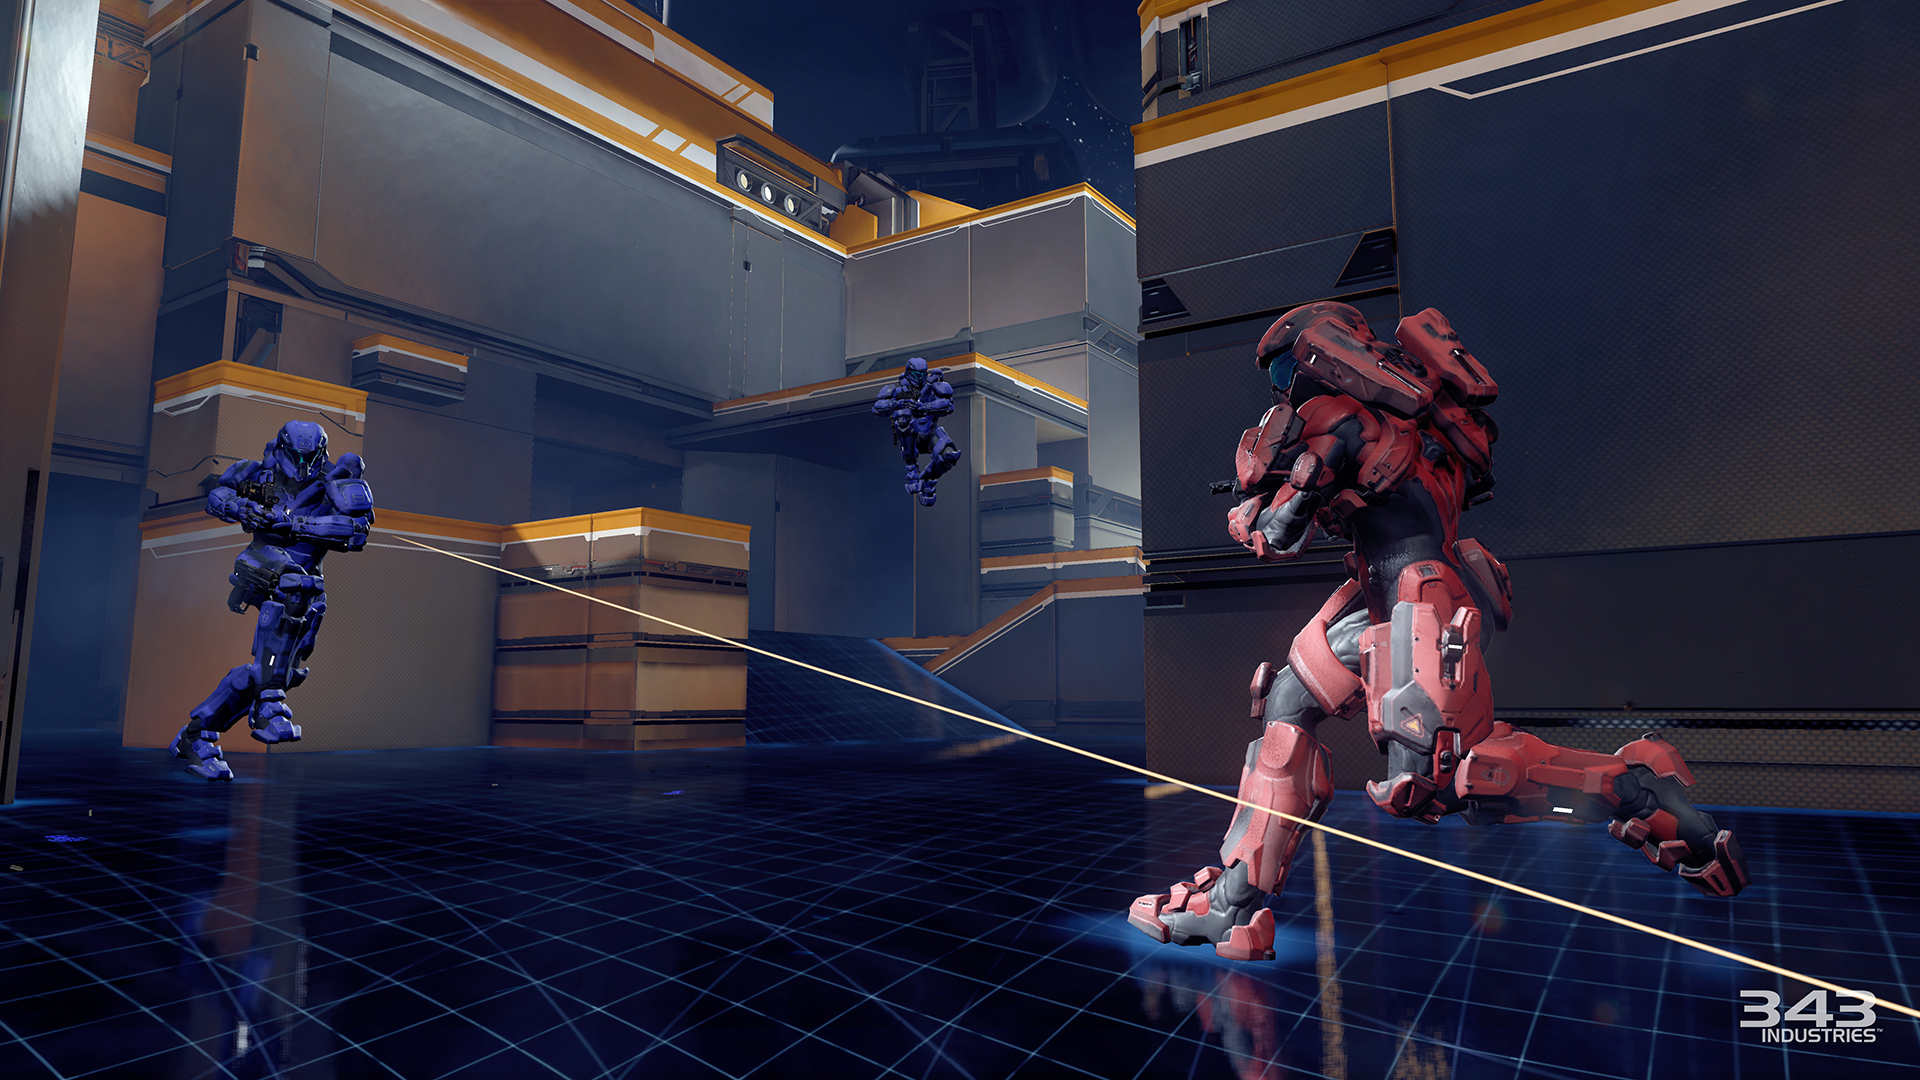 Halo 5 Adds Stricter Rules For Multiplayer Offenses | The